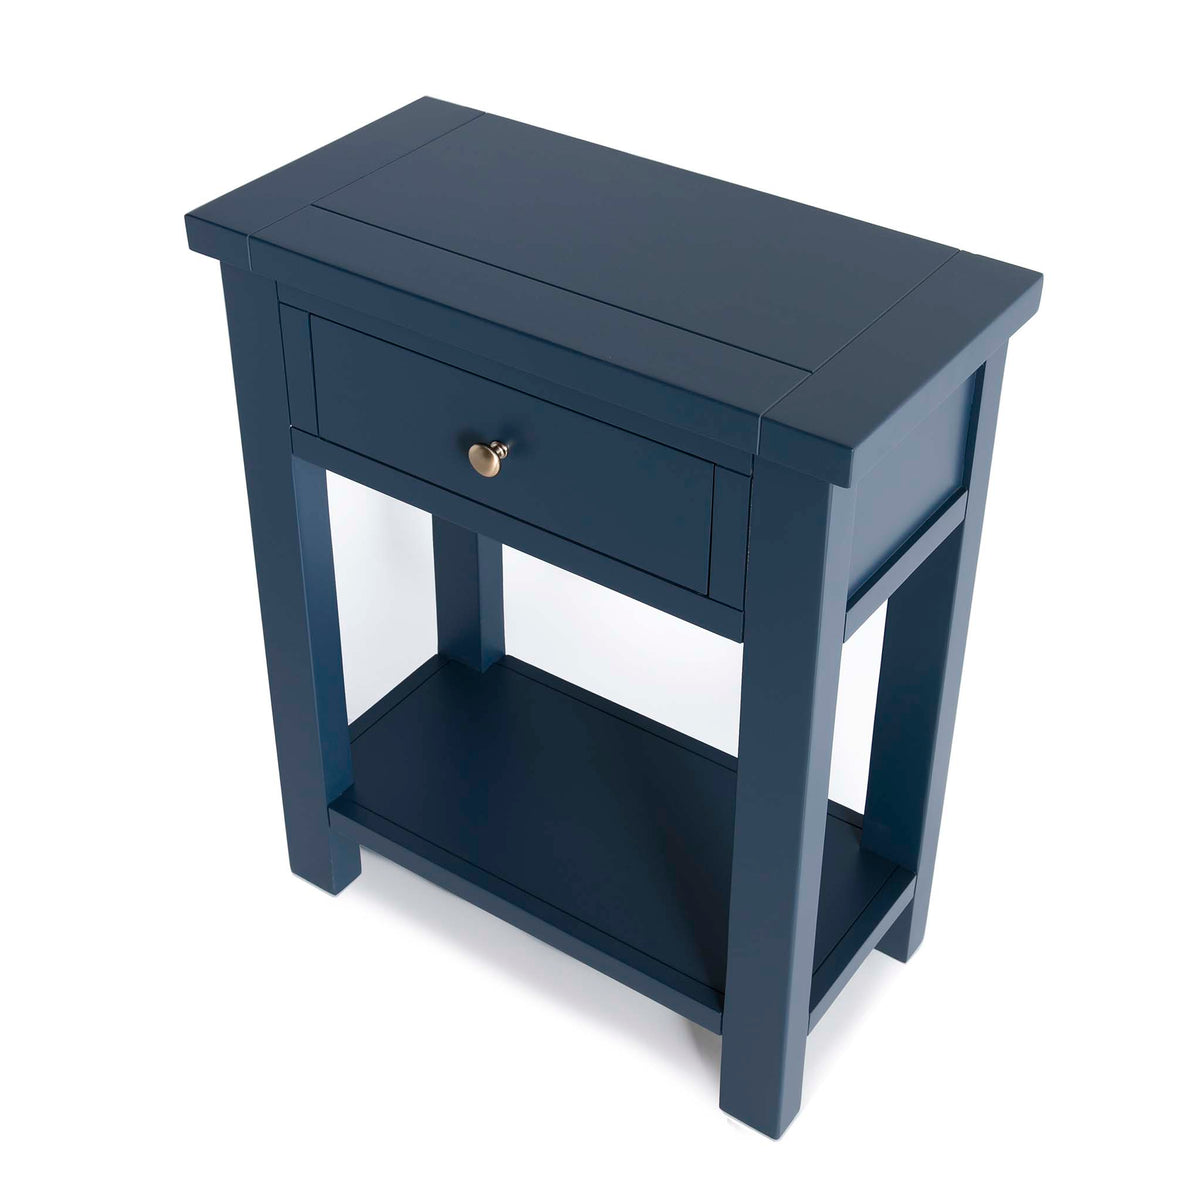 Cheltenham Blue Telephone Table - Looking down on side of table